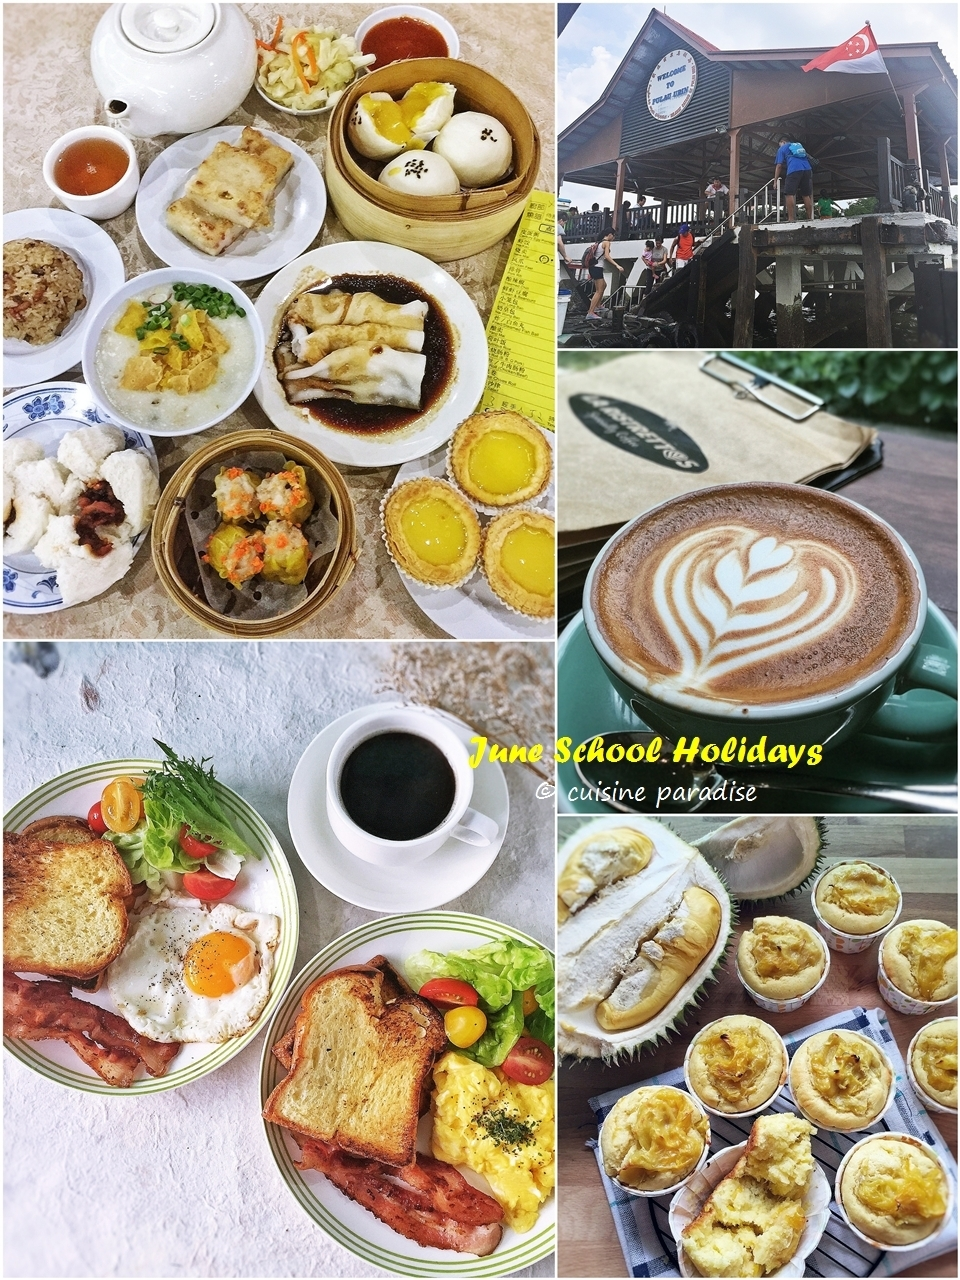 [June School Holidays: Week 4] Pulau Ubin, Food Hunt and Recipes